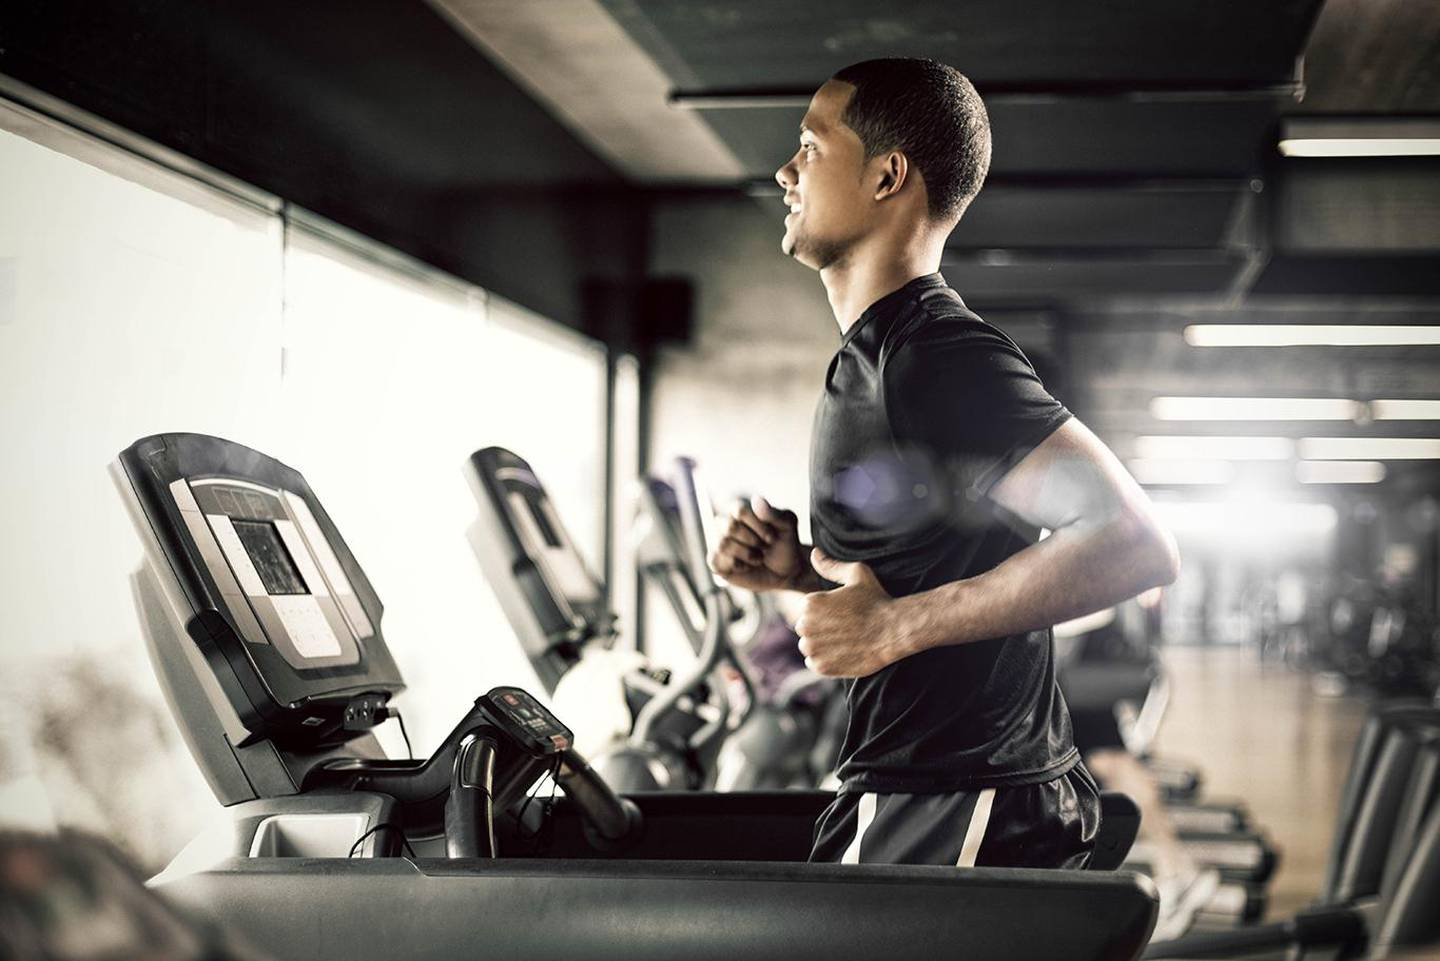 Healthy young man in GYM running on treadmill